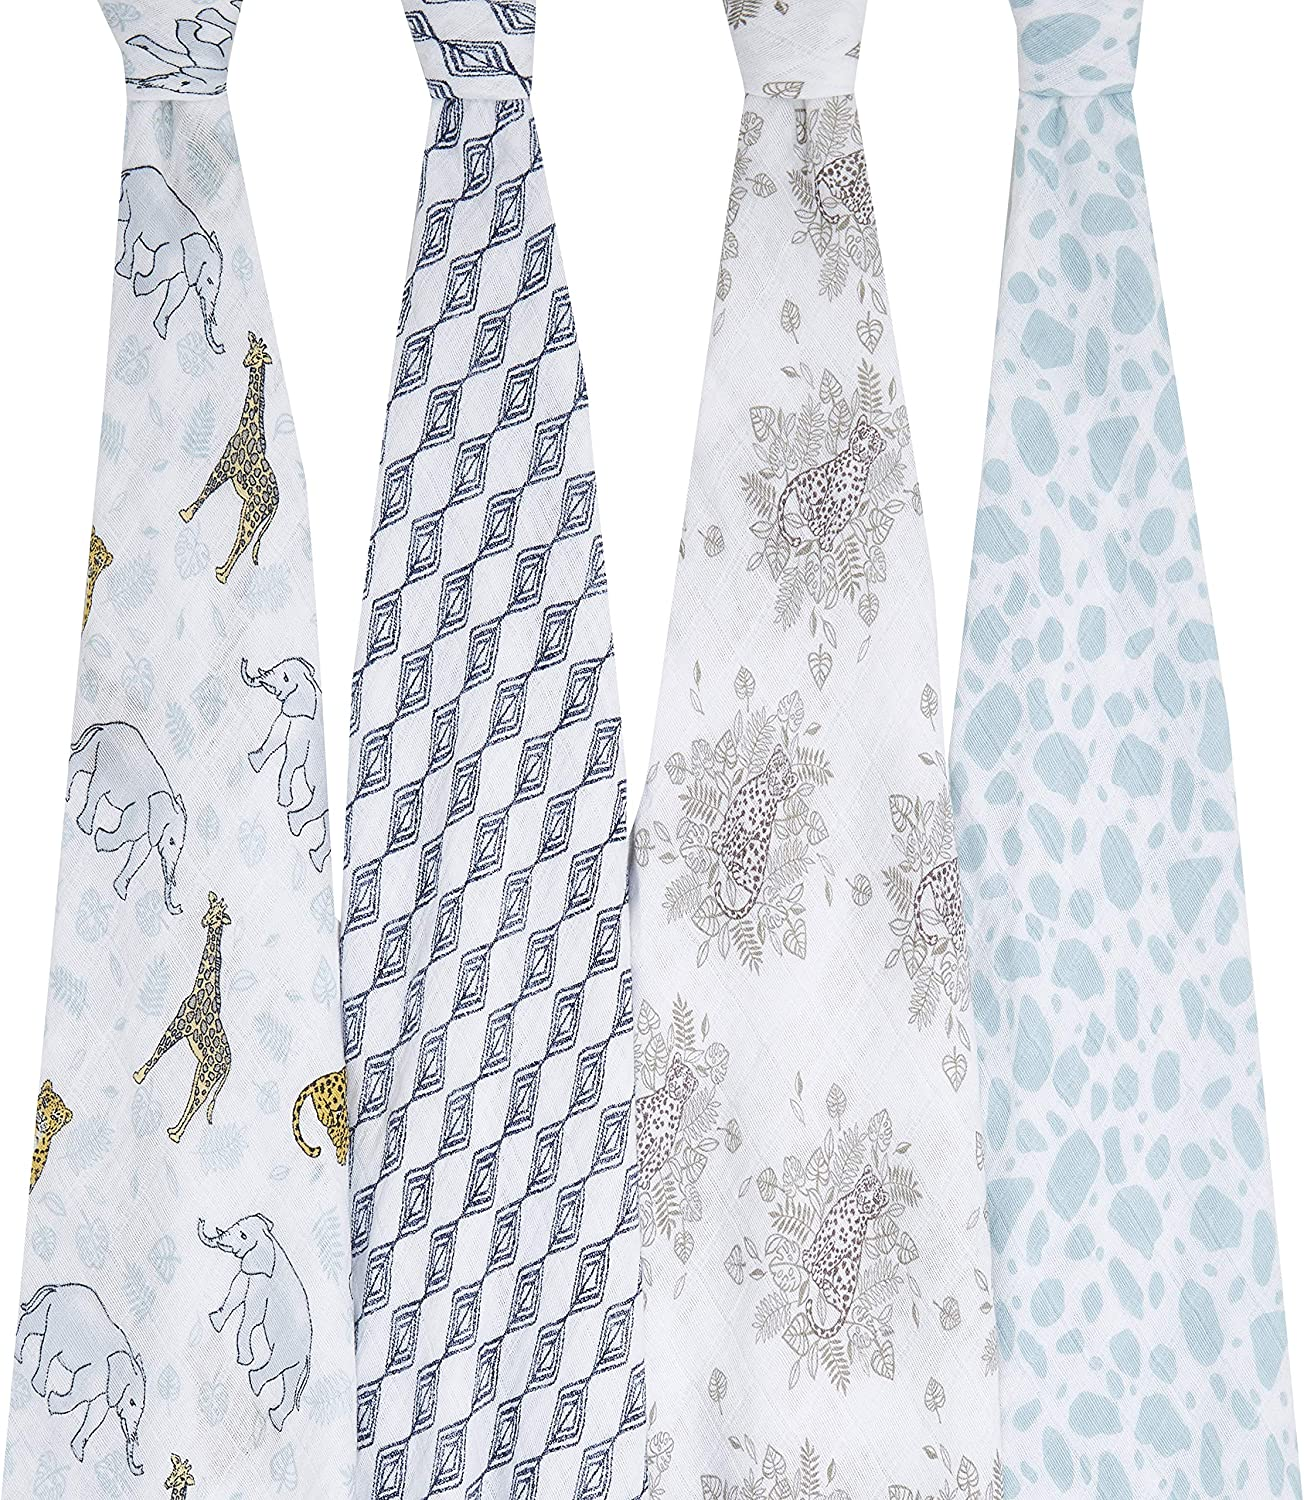 ASWC20002 anais Classic swaddles 100/% Muslin Cotton aden Gone Fishing 2-Pack